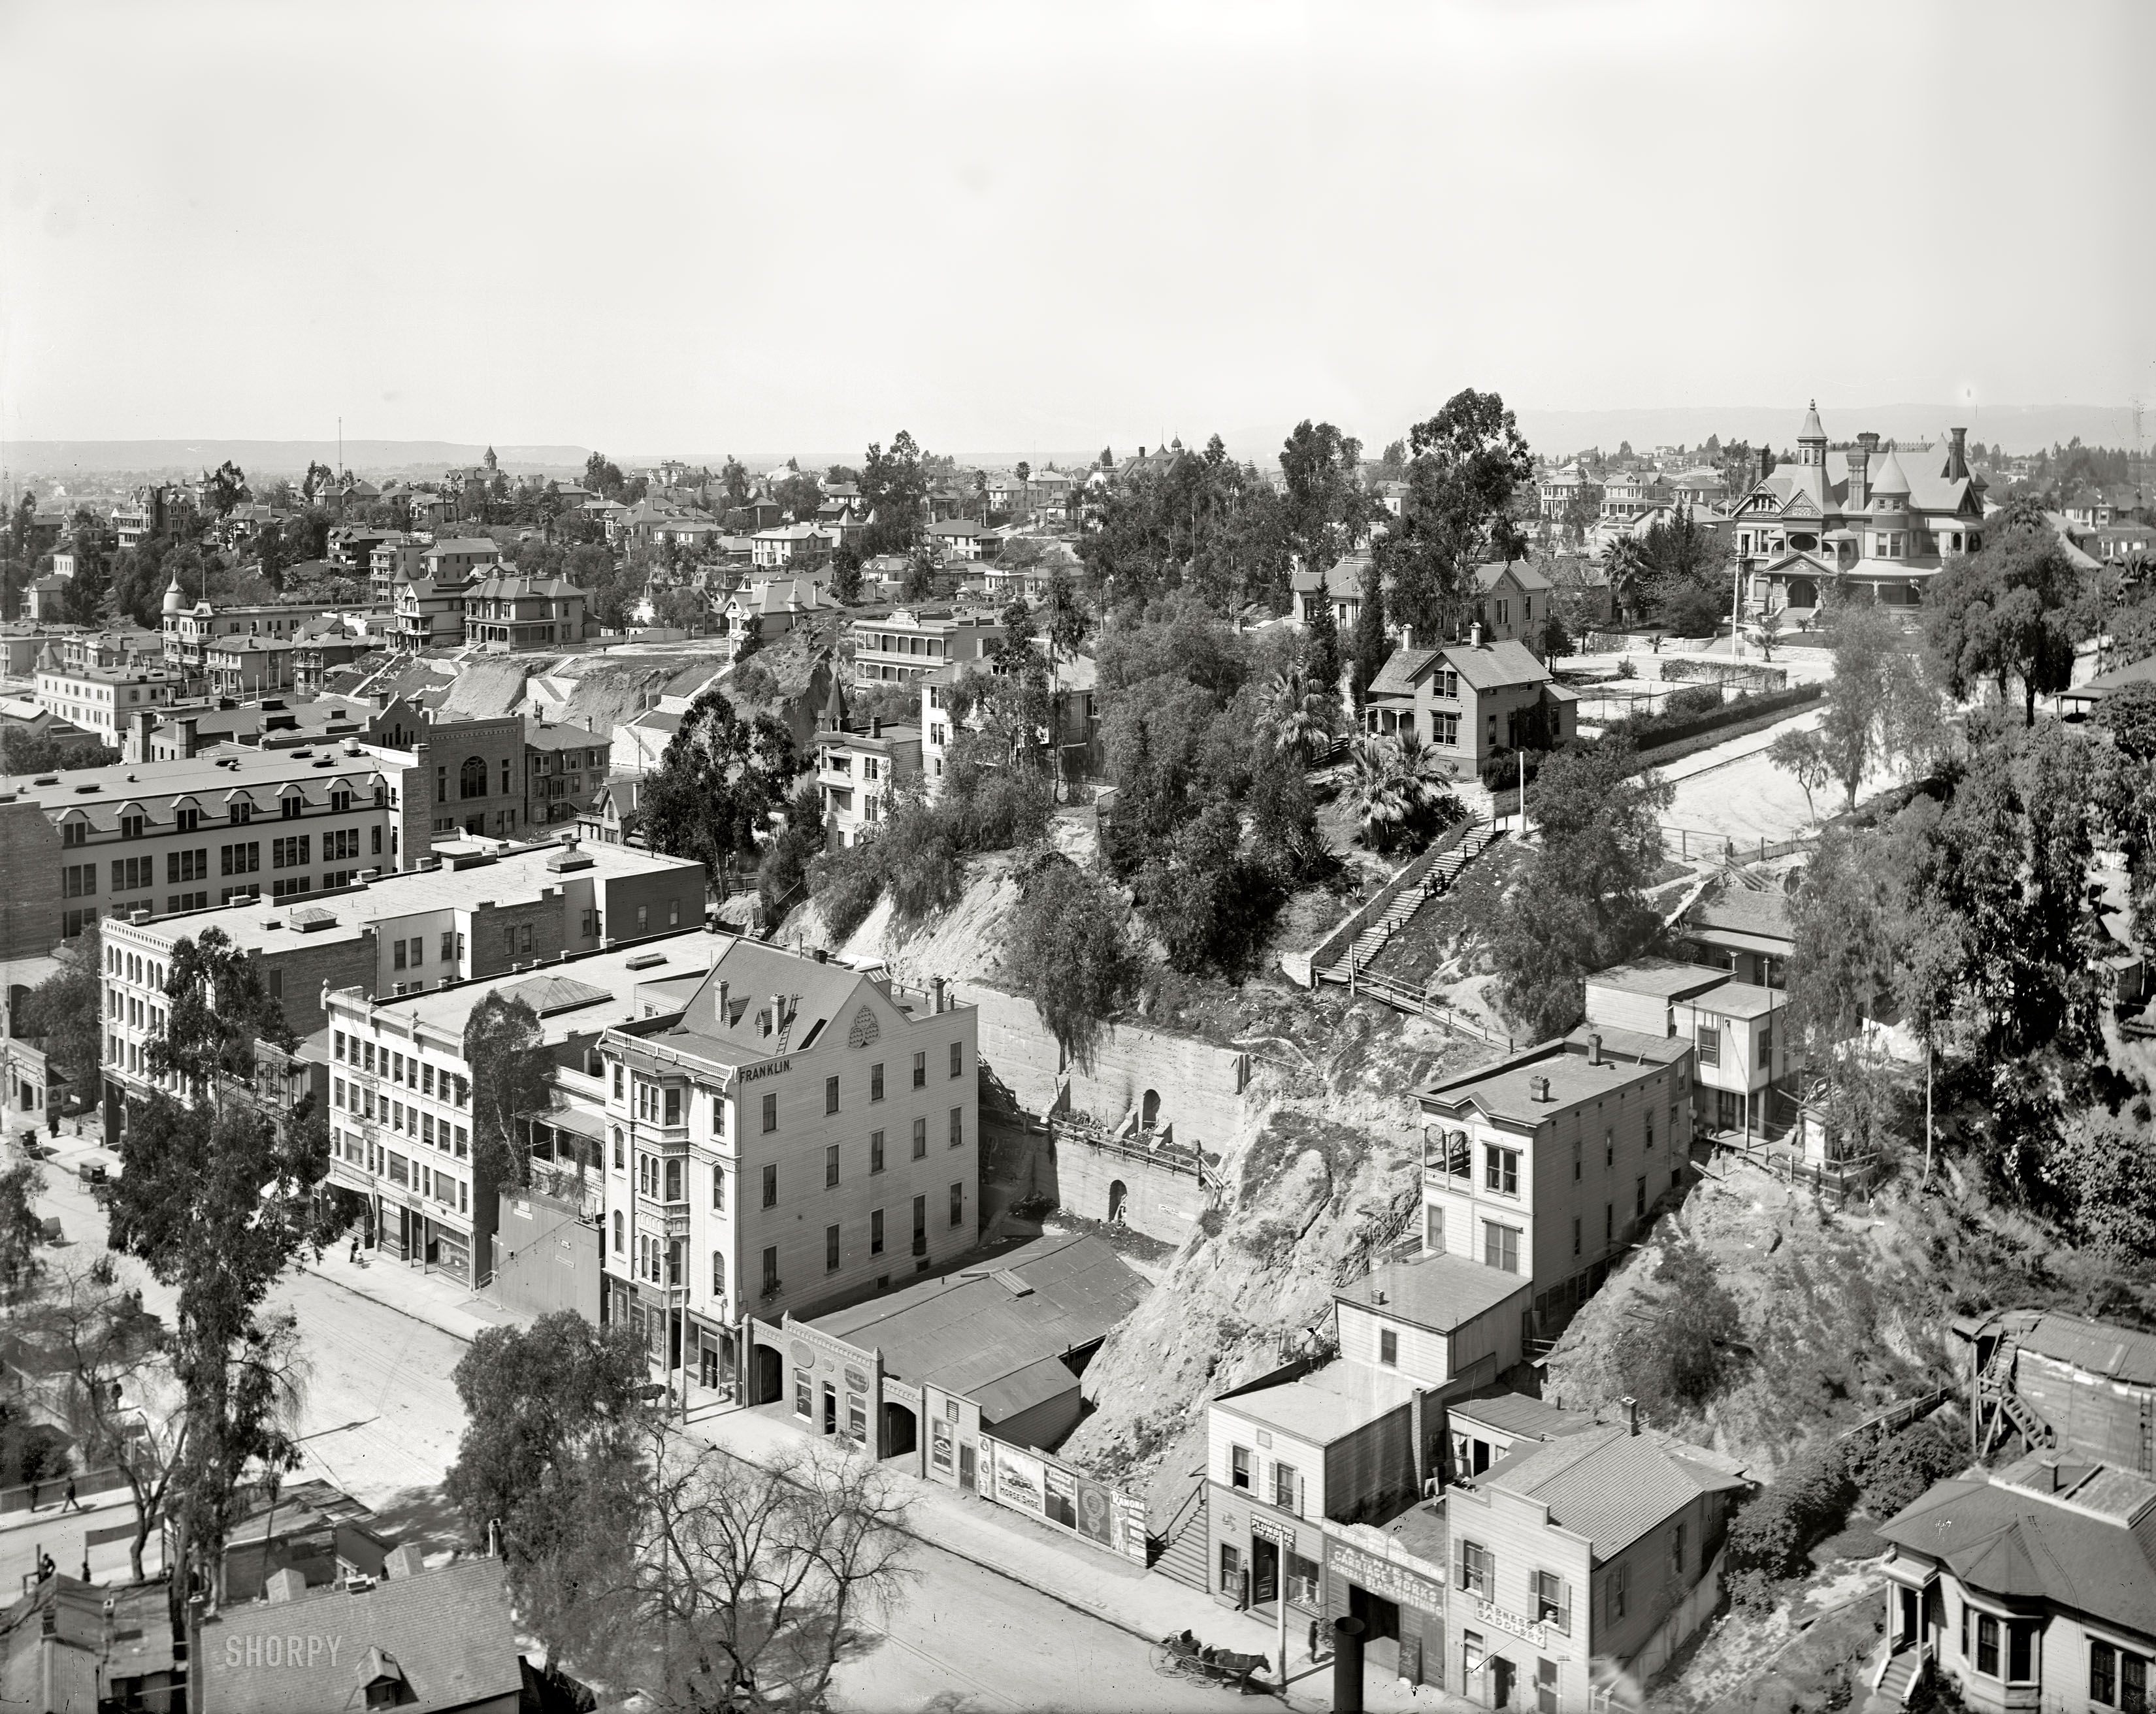 Shorpy Historical Photo Archive Los Angeles 1899 Los Angeles History Vintage Los Angeles California History